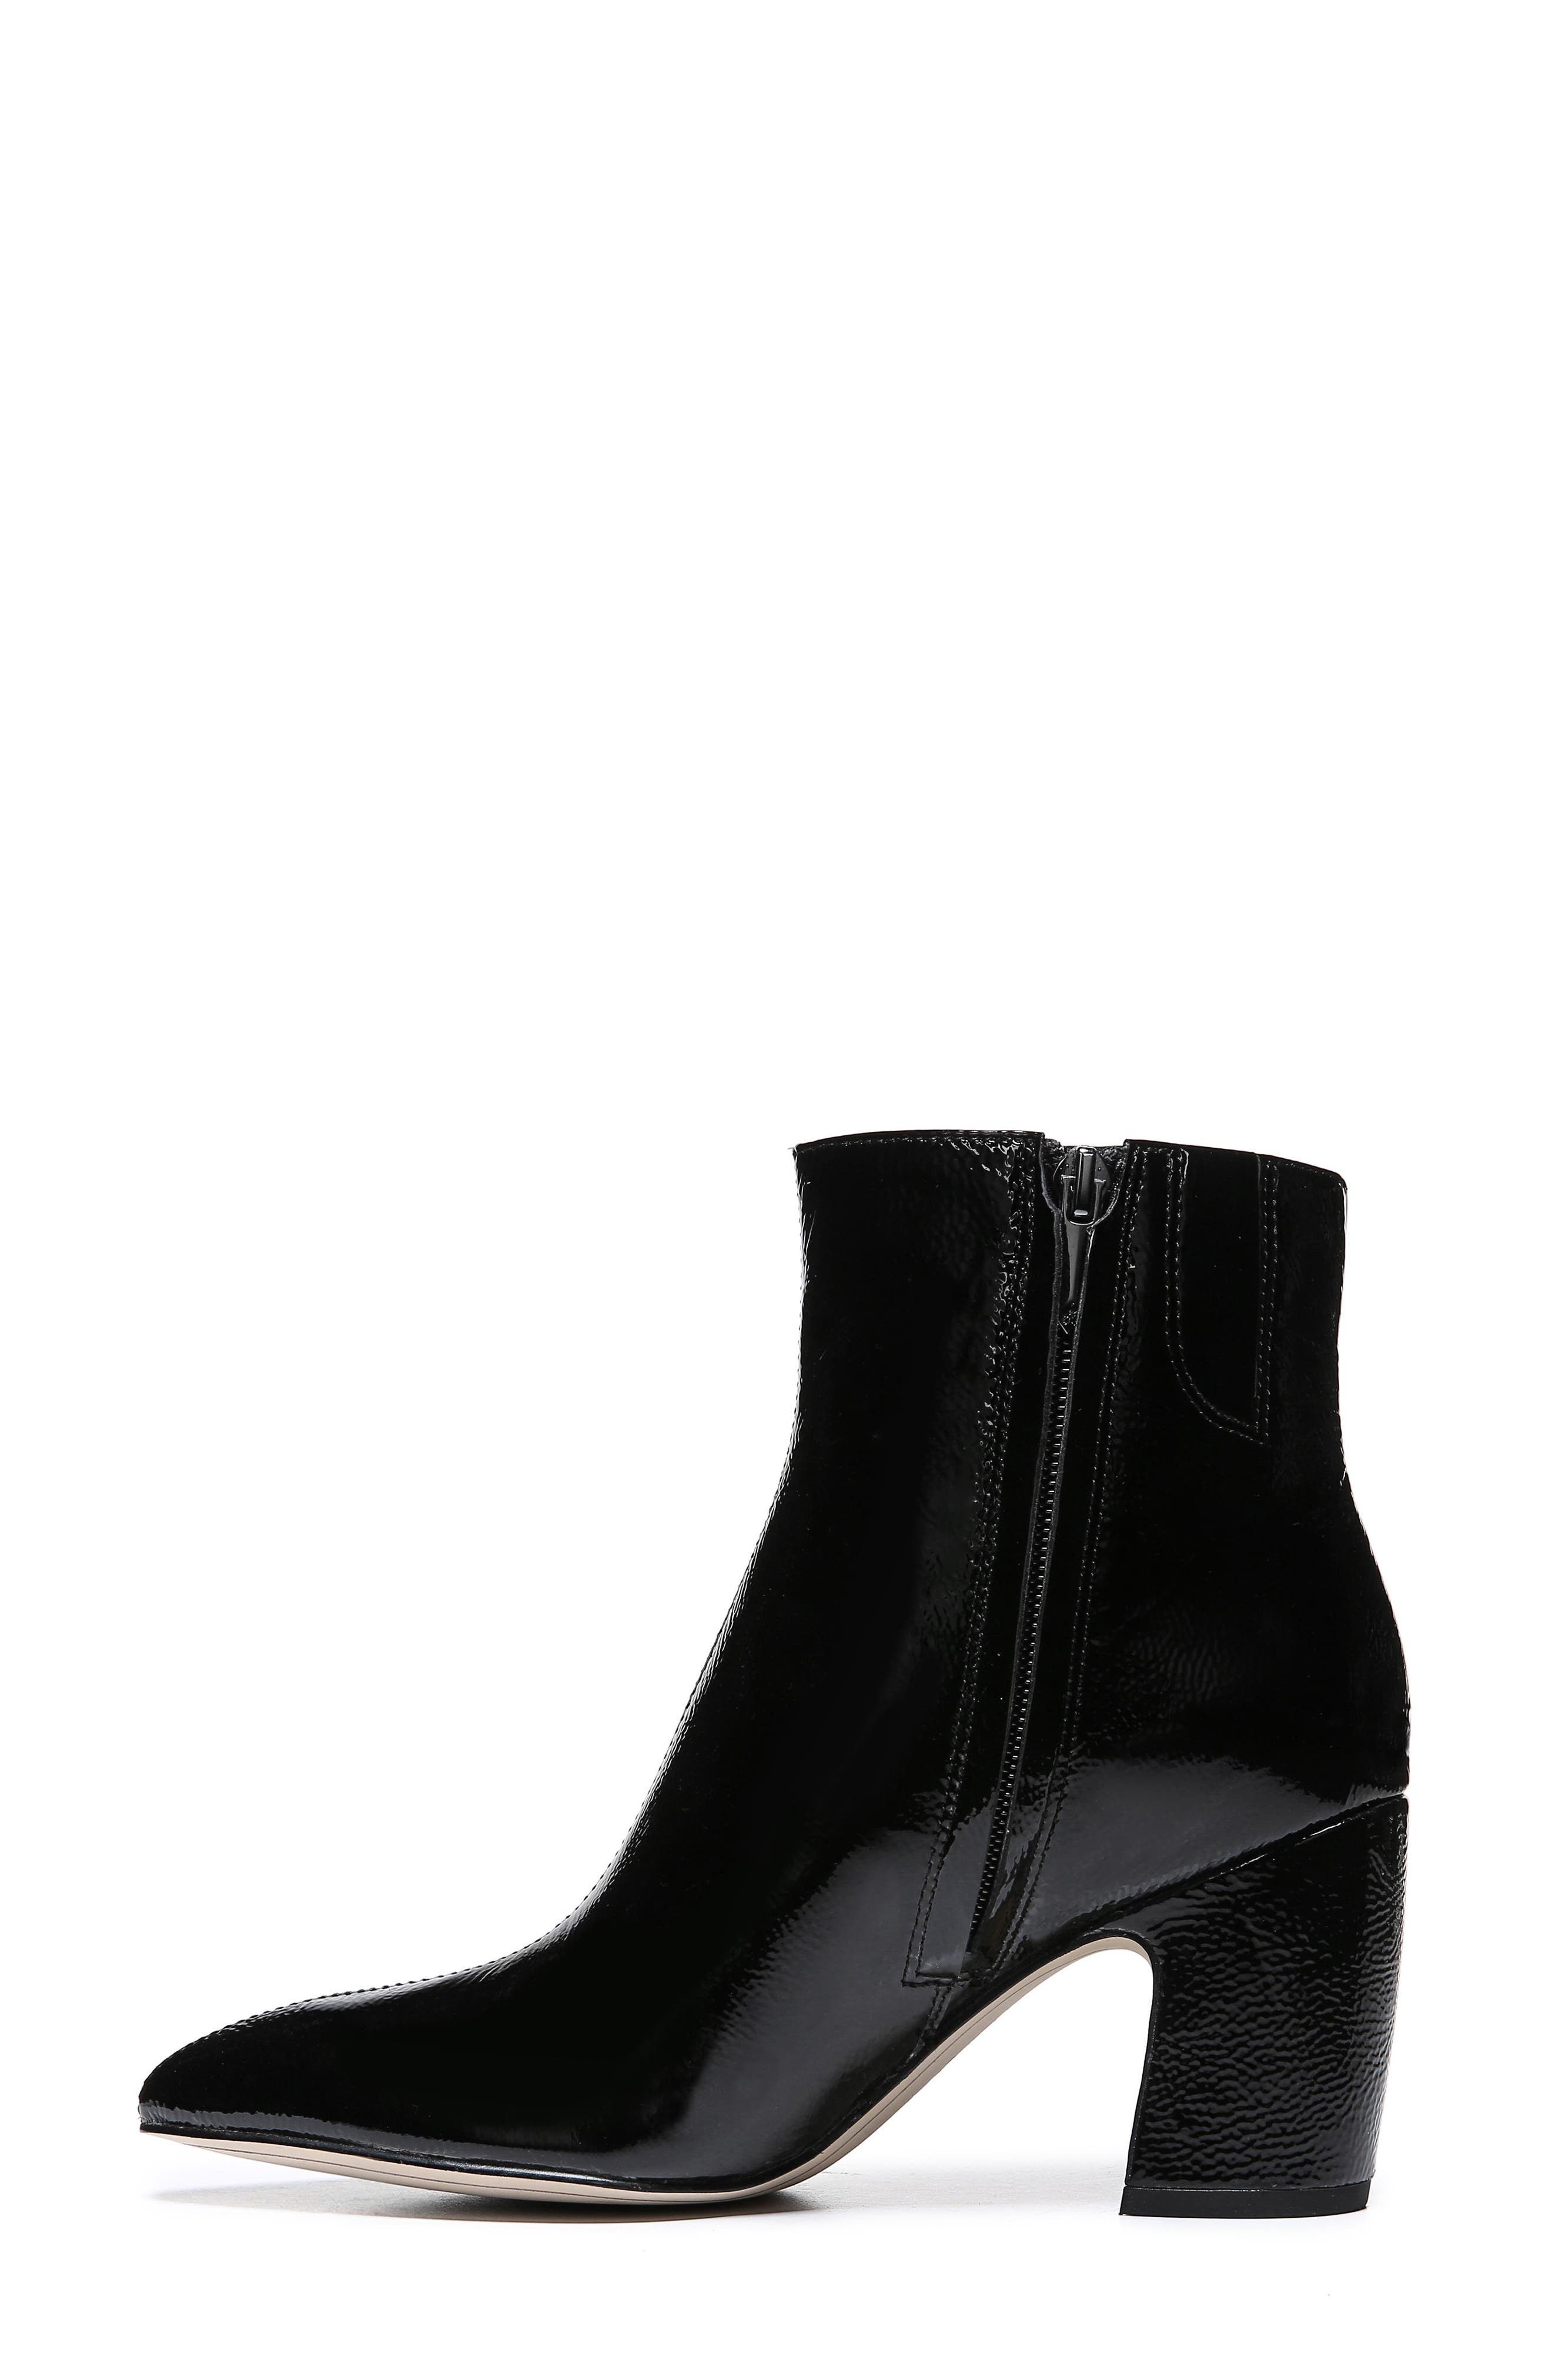 Hilty Genuine Calf Hair Bootie,                             Alternate thumbnail 9, color,                             BLACK PATENT LEATHER